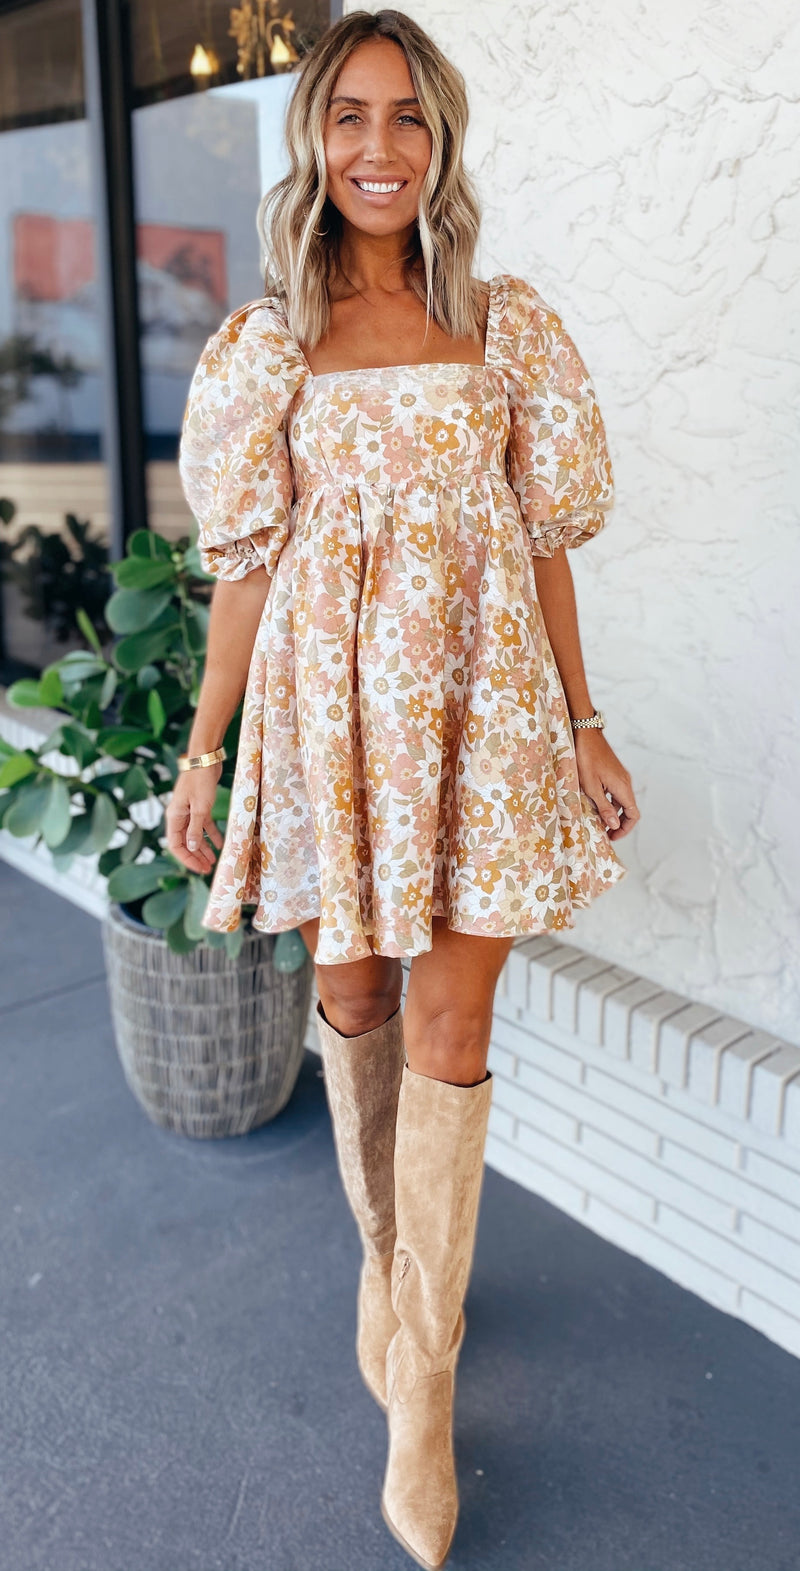 The Blooms Babydoll Dress